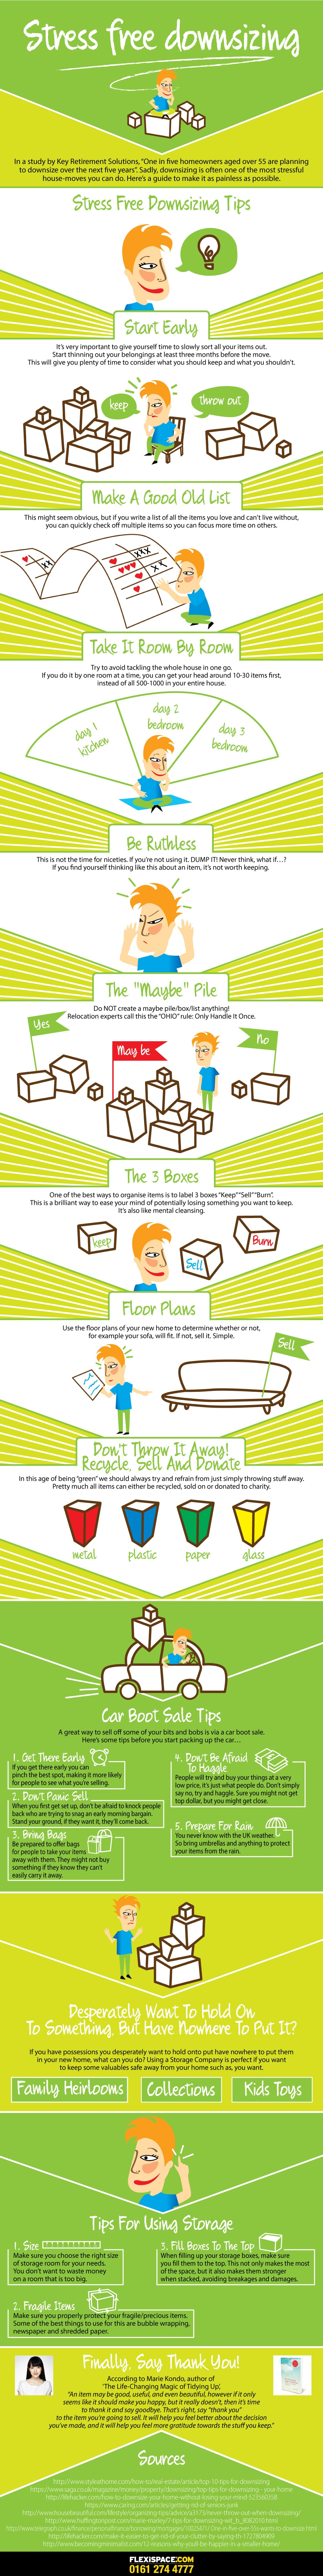 Downsizing your house with self storage infographic